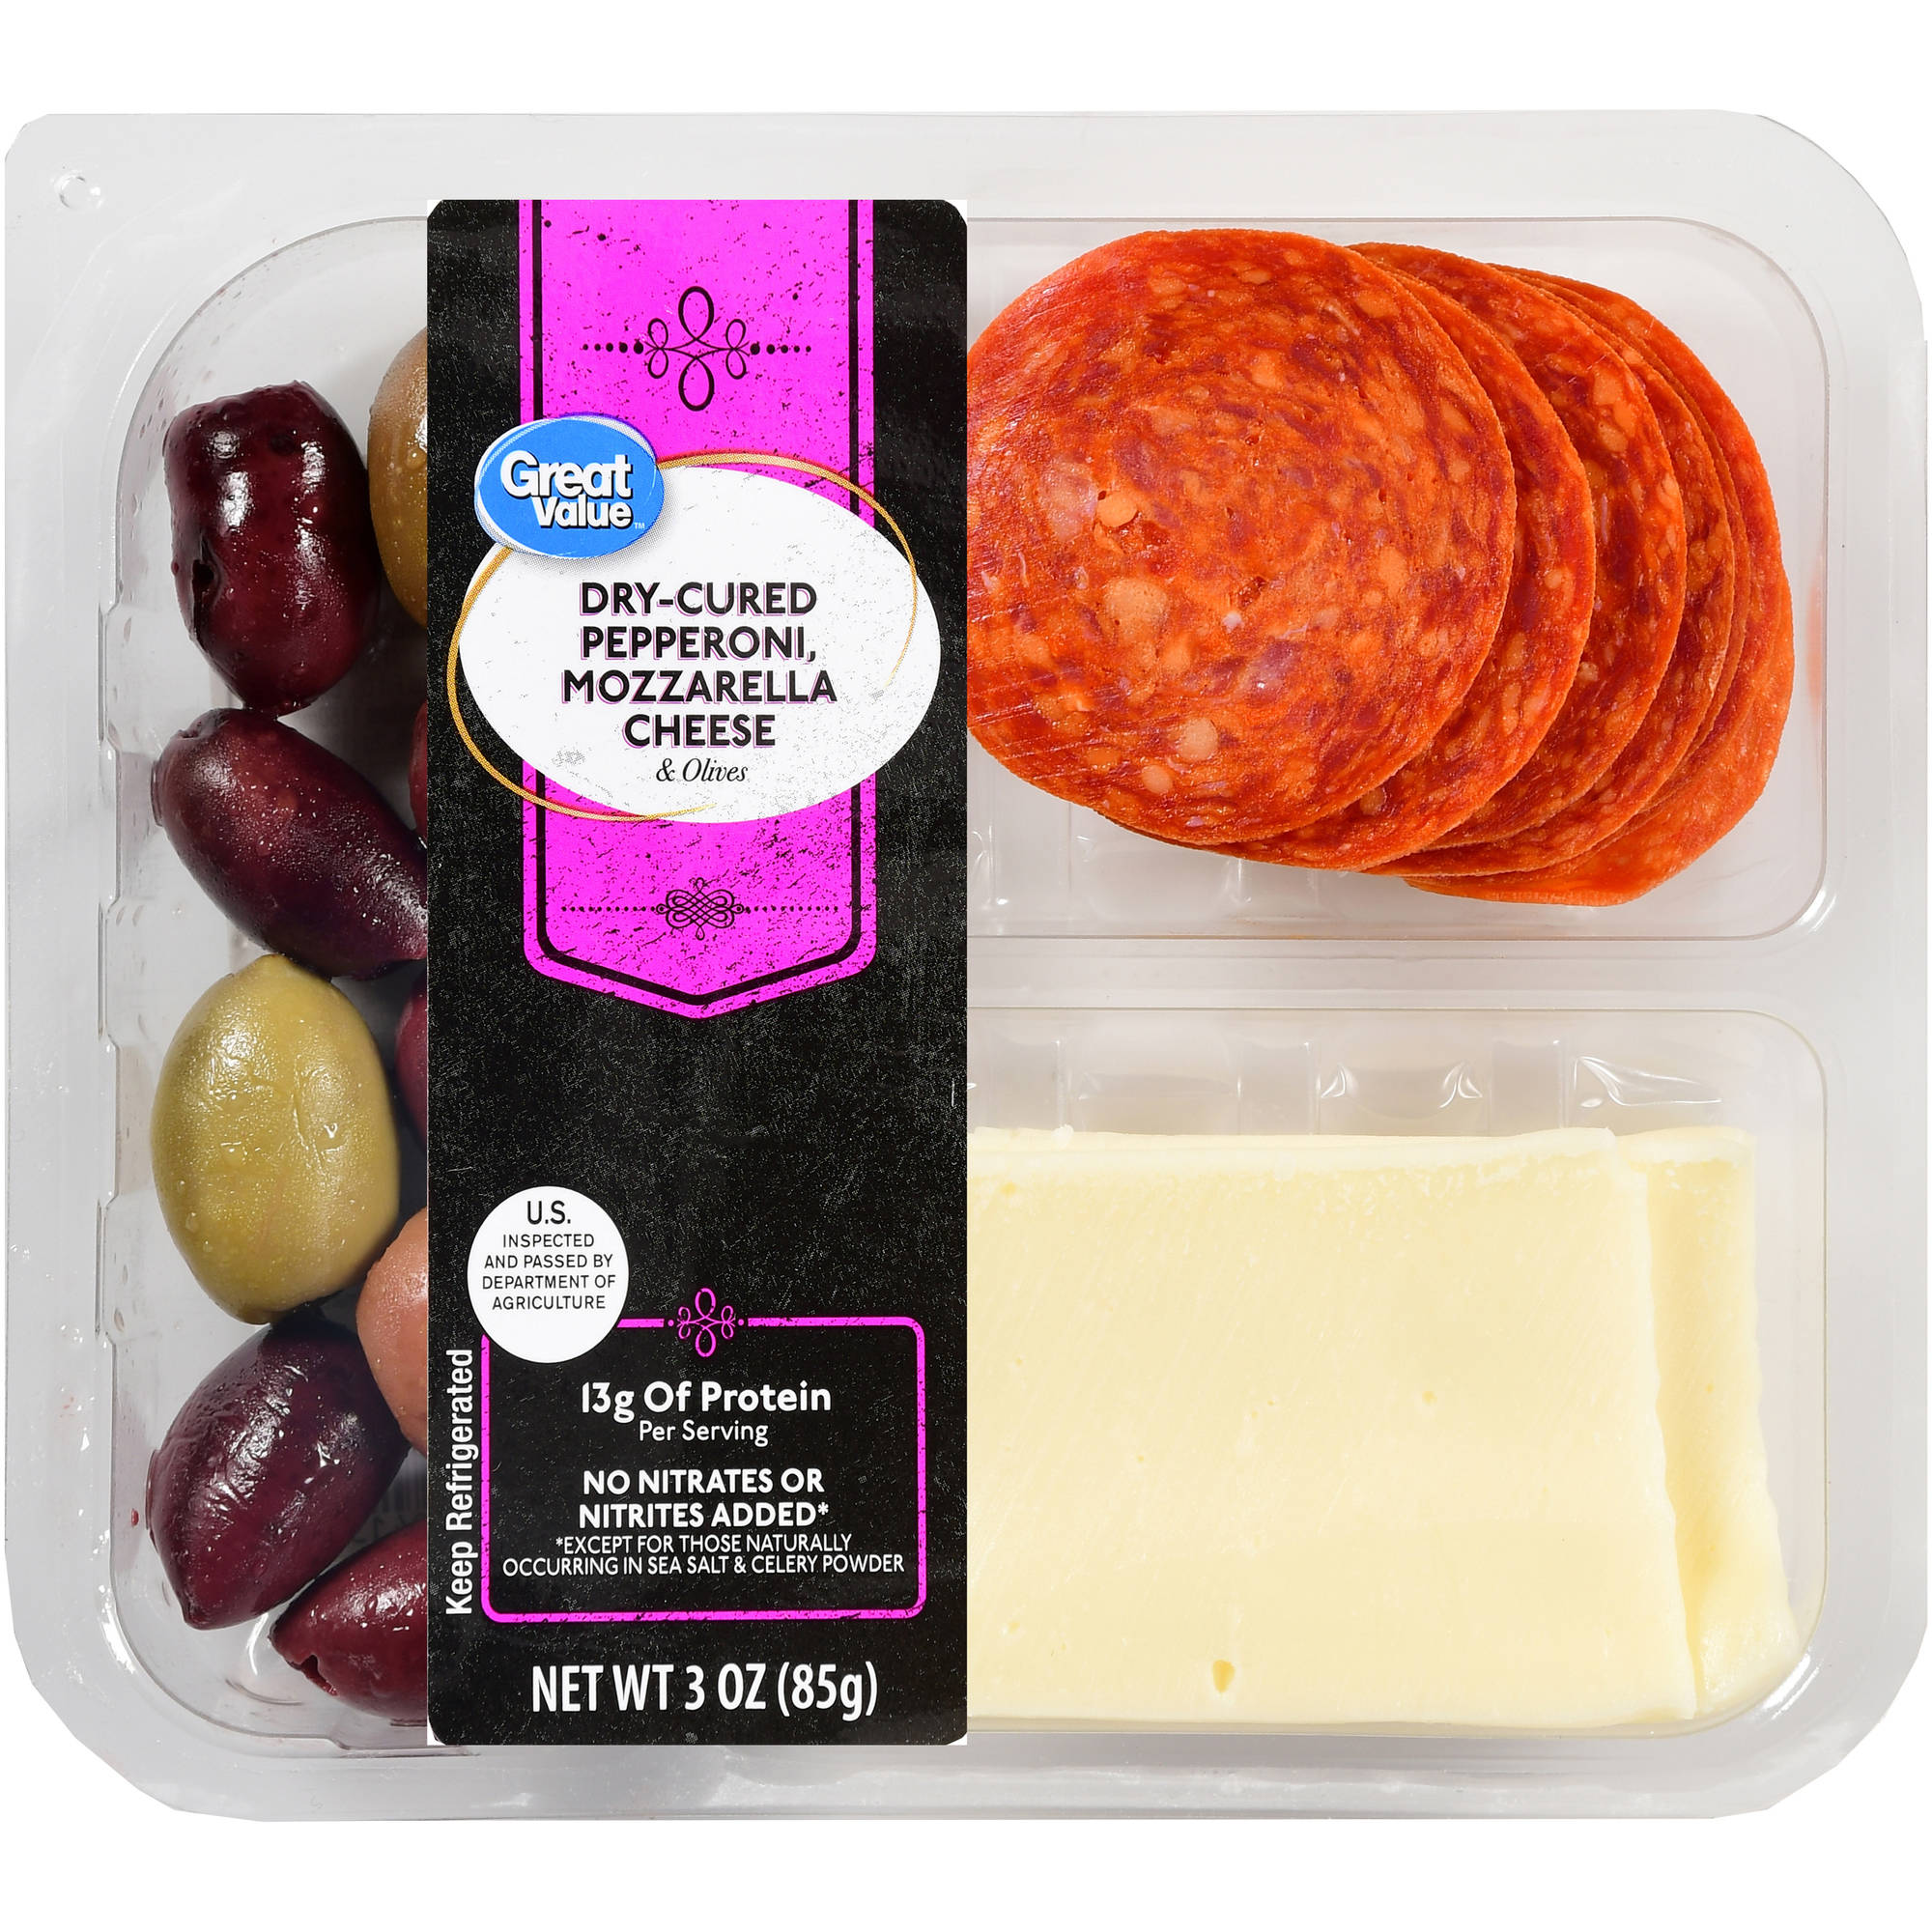 Great Value Dry Cured Pepperoni, Mozzarella Cheese & Olives, 3 oz